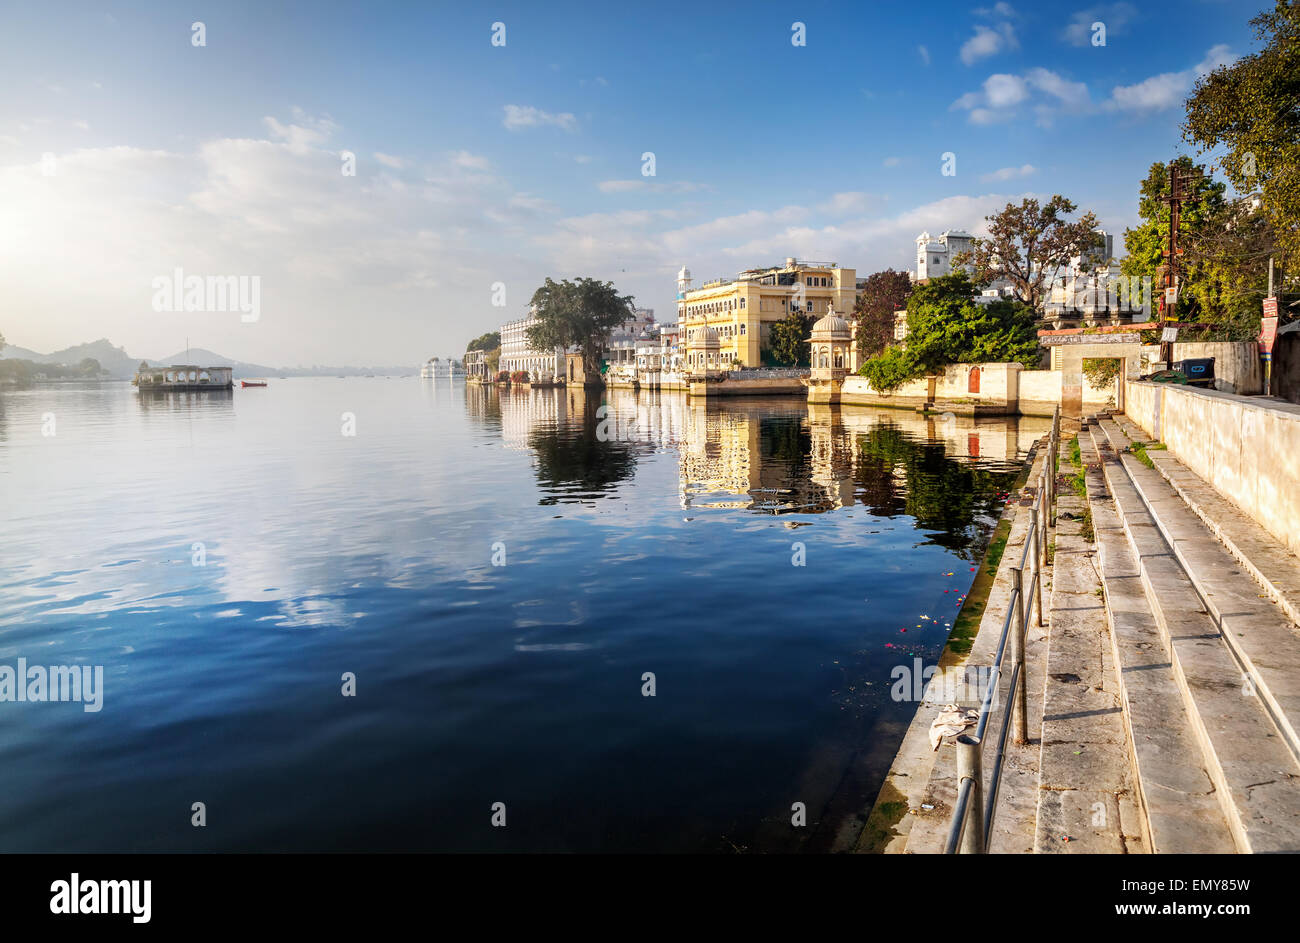 Lake Pichola and hotels at blue sky in Udaipur, Rajasthan, India - Stock Image